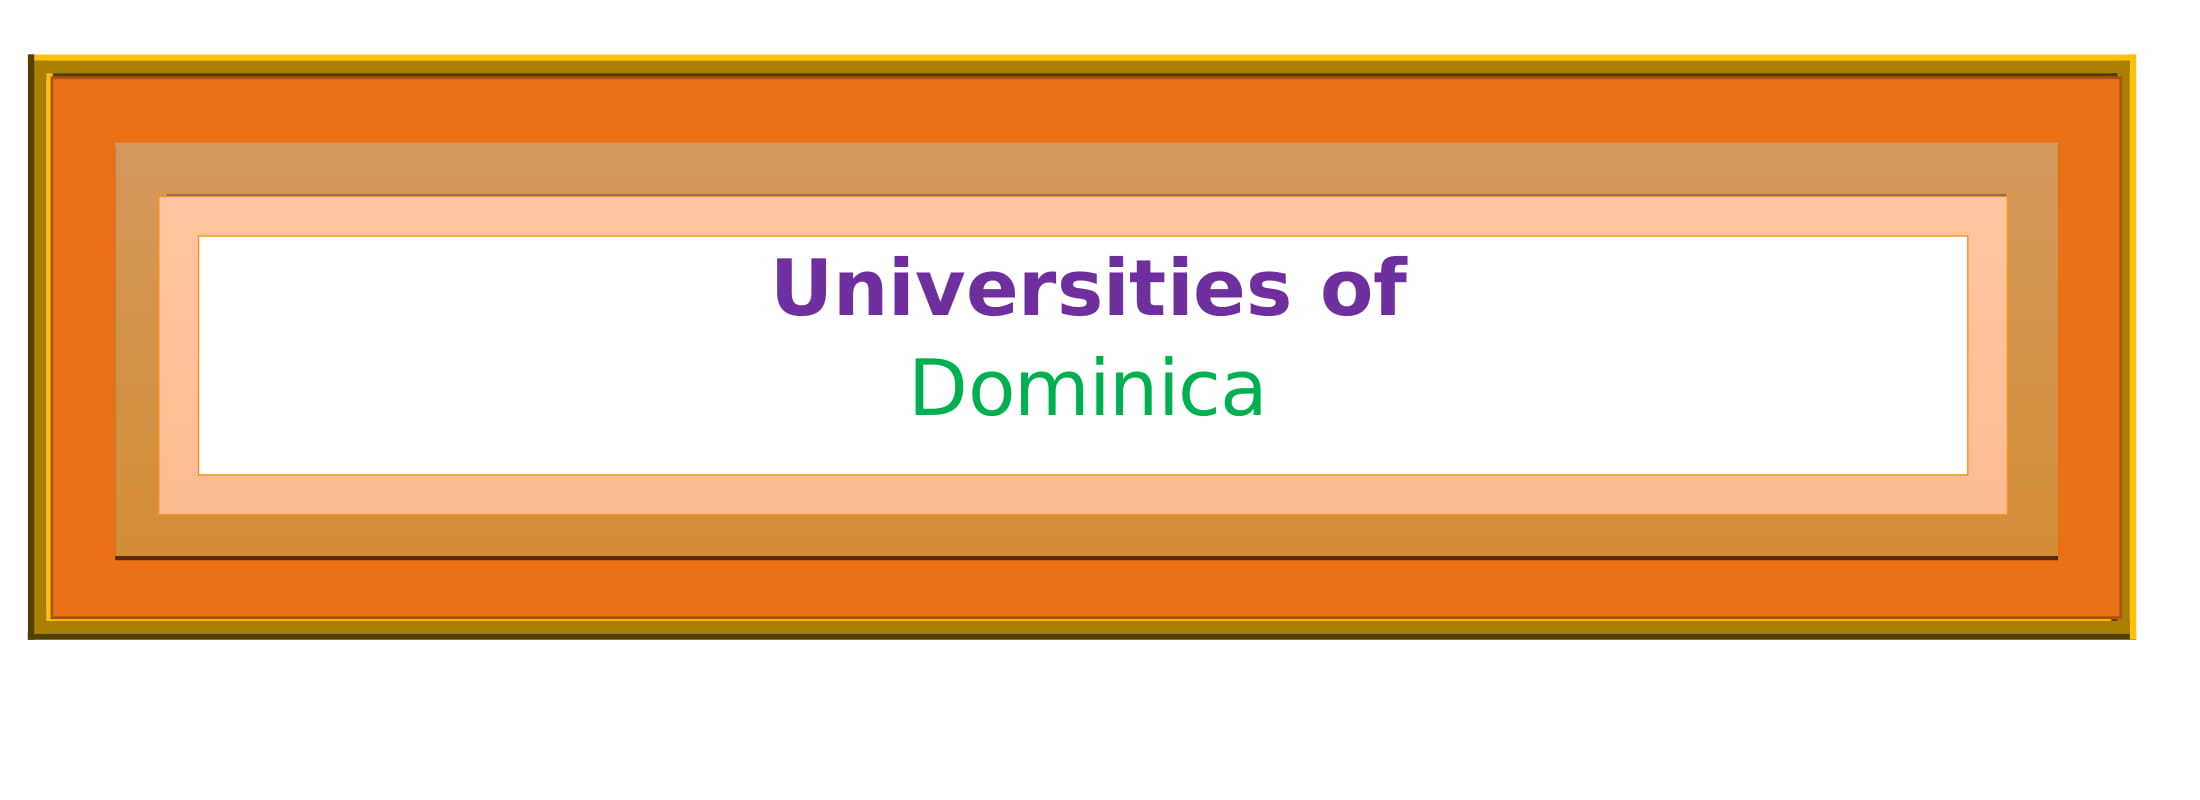 List of Universities in Dominica